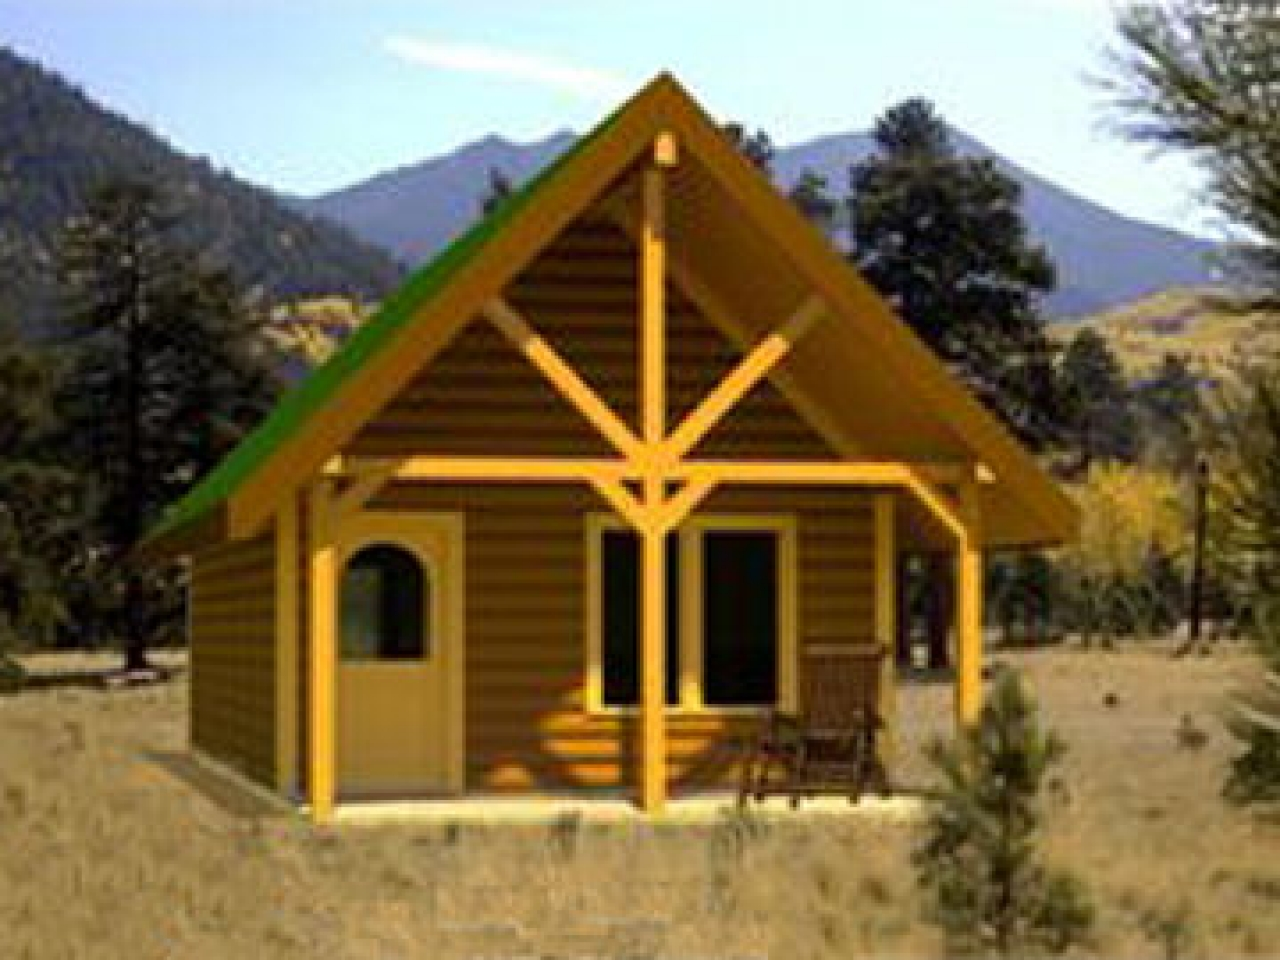 Small sip home kits sips panels house kits small cabin for Sip housing